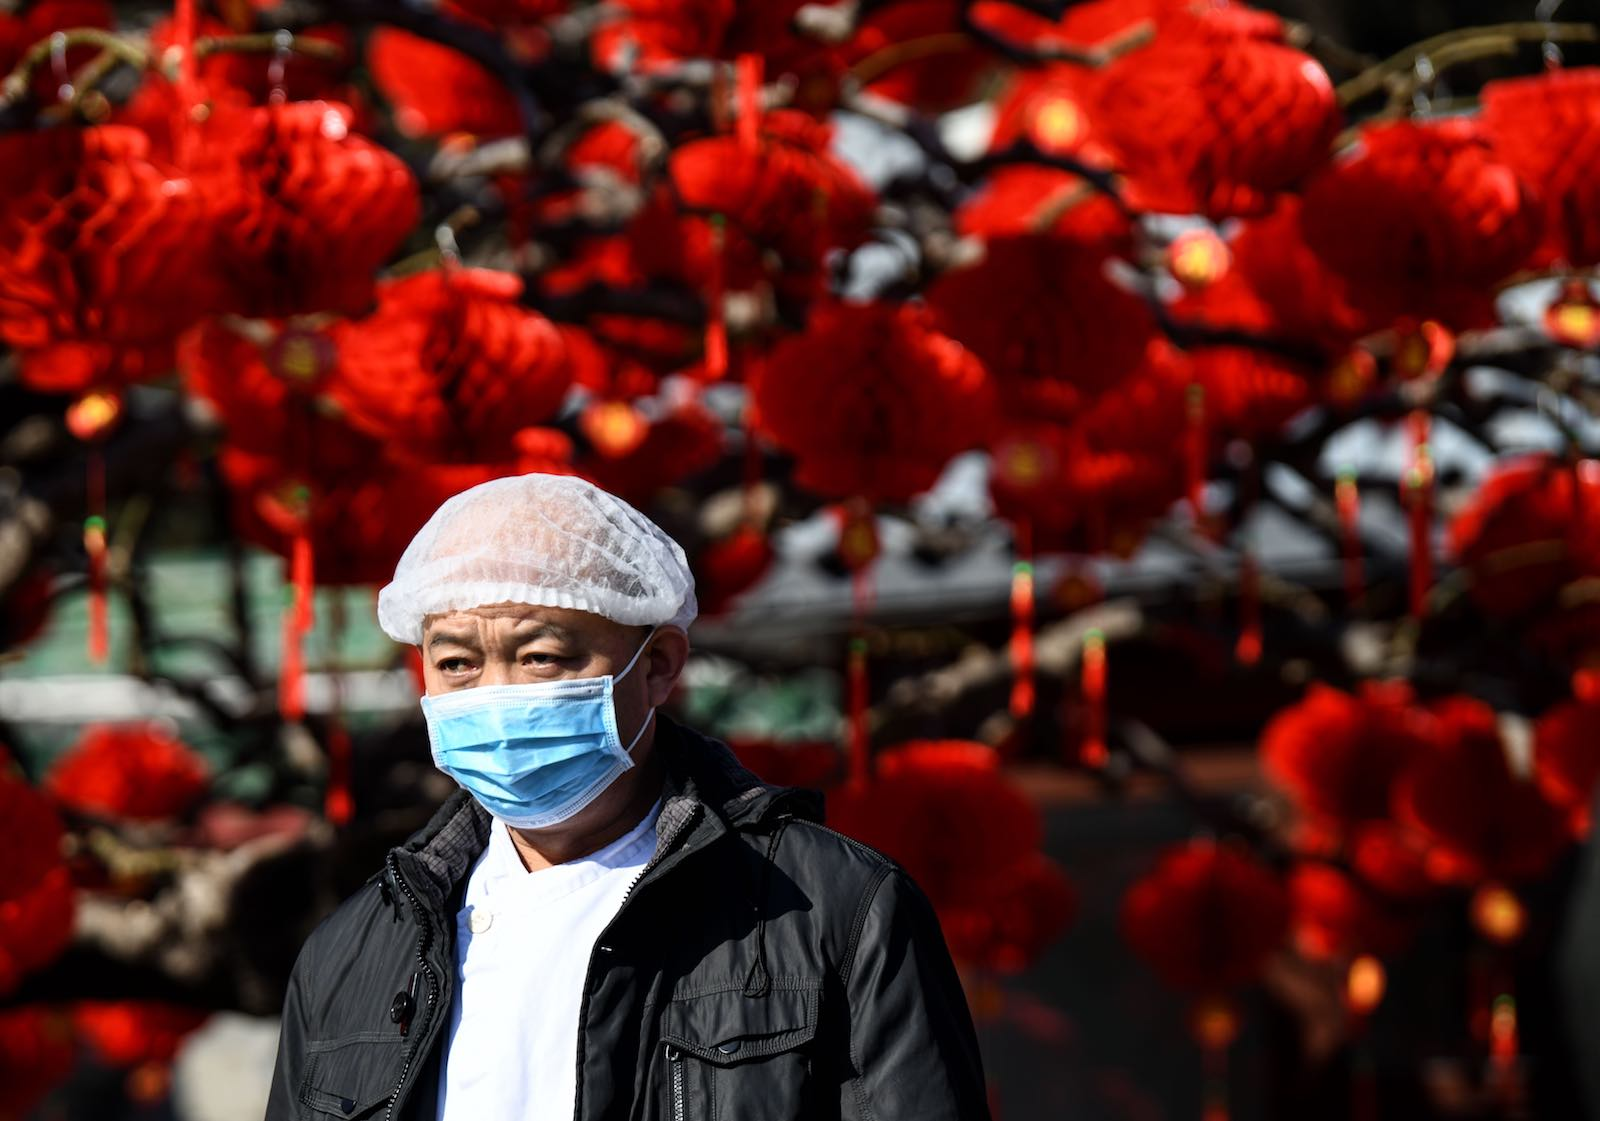 The difficulties of managing a public health crisis have been accentuated by timing, on the eve of Lunar New Year (Photo: Noel Celis/AFP/Getty Images)